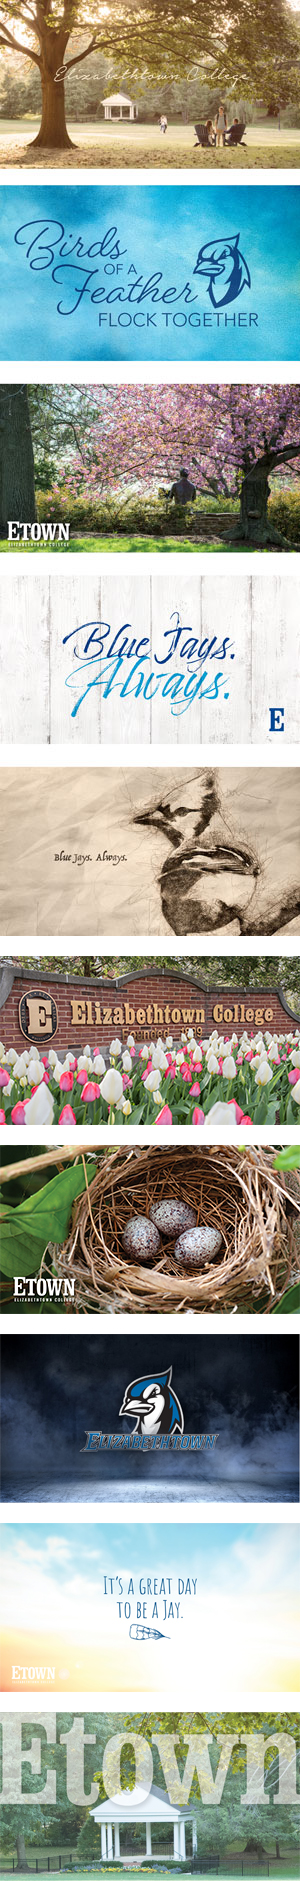 Etown Wallpapers